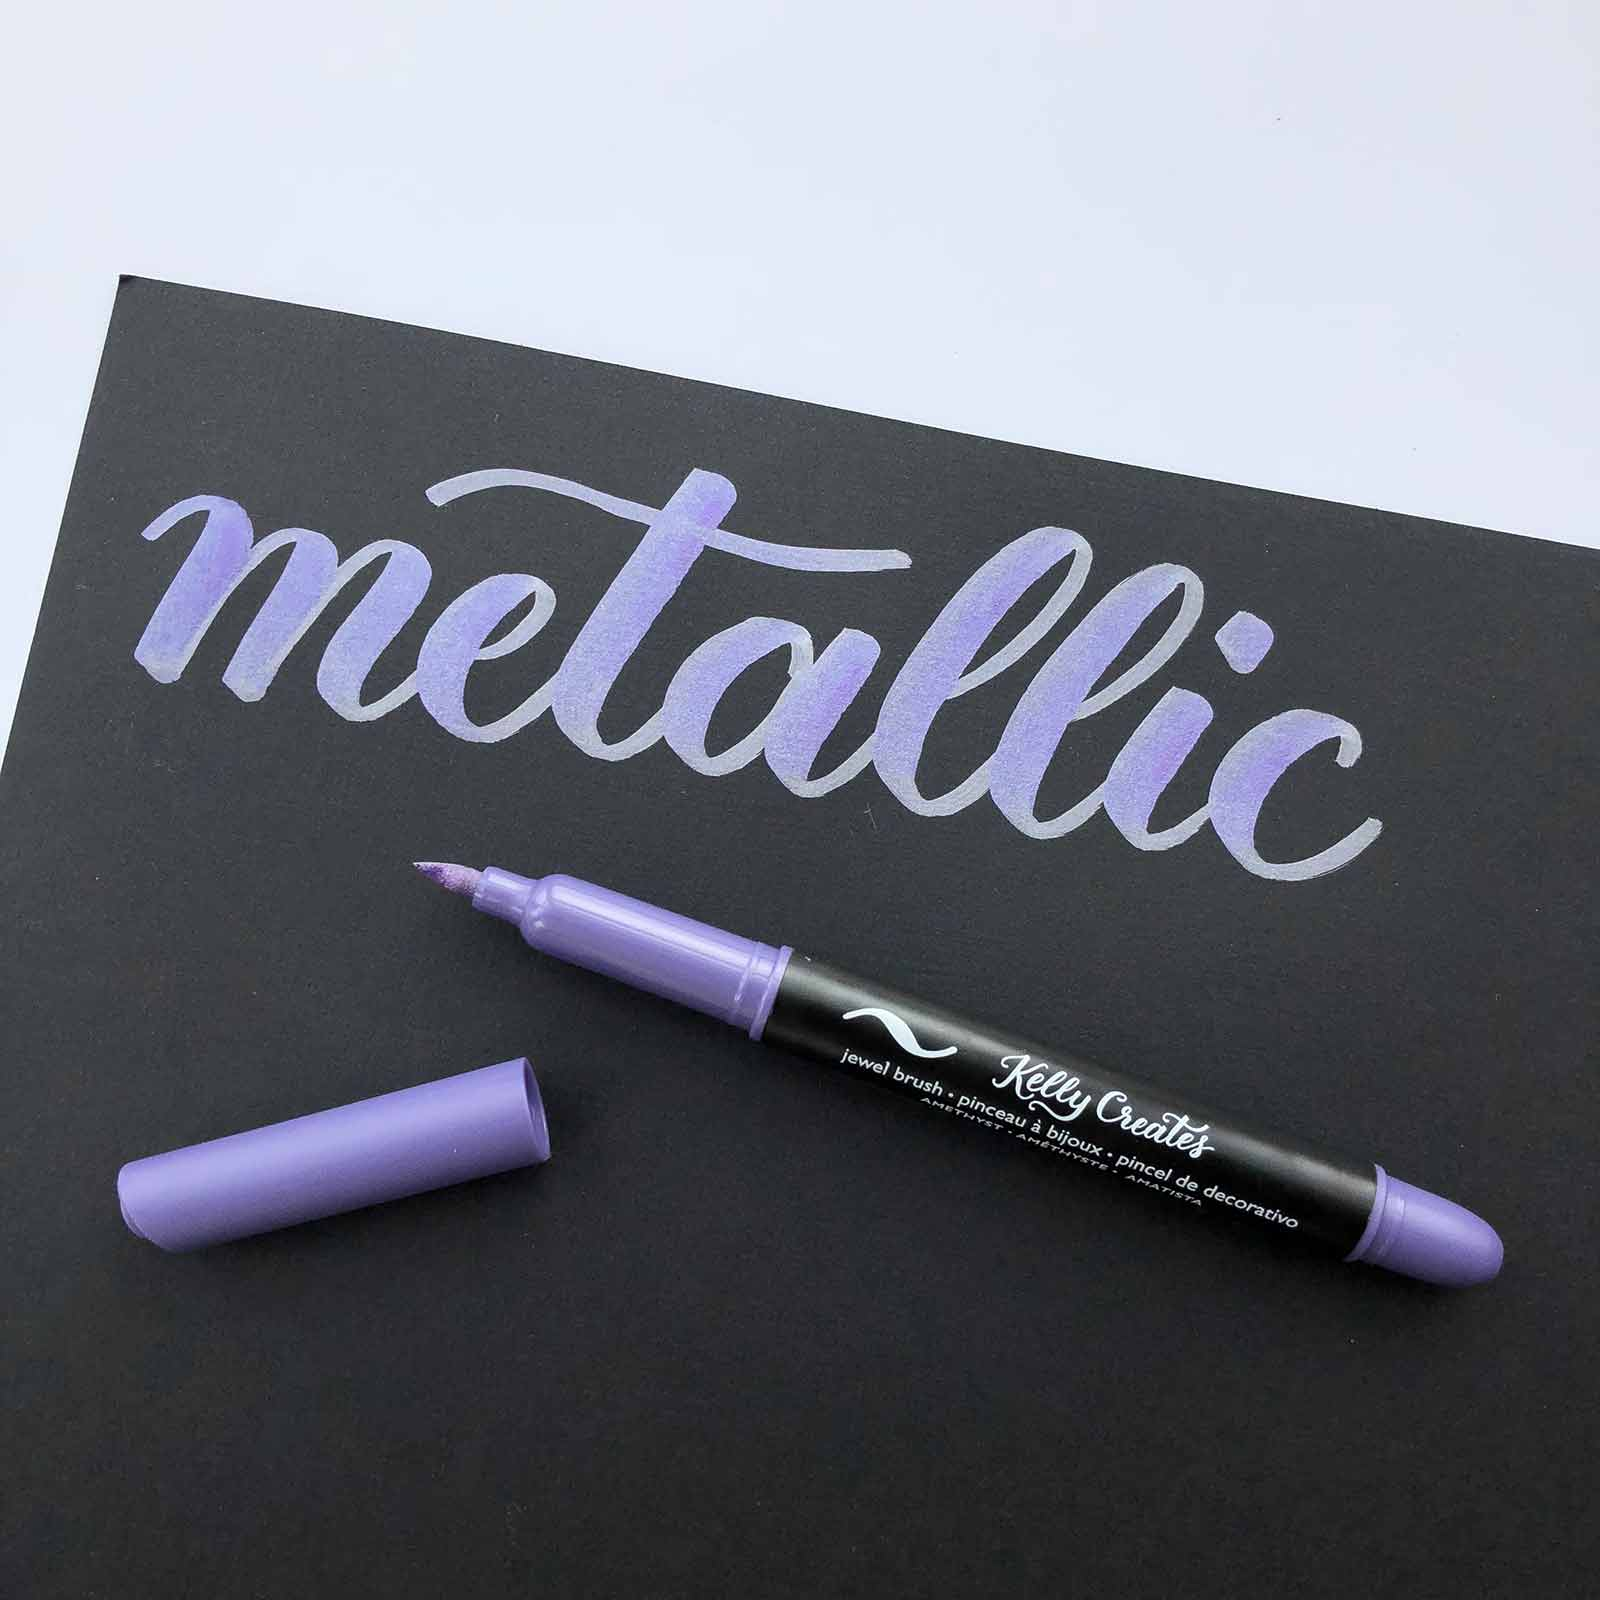 kelly-creates-metallic-jewel-brush-pens-[5]-23474-p